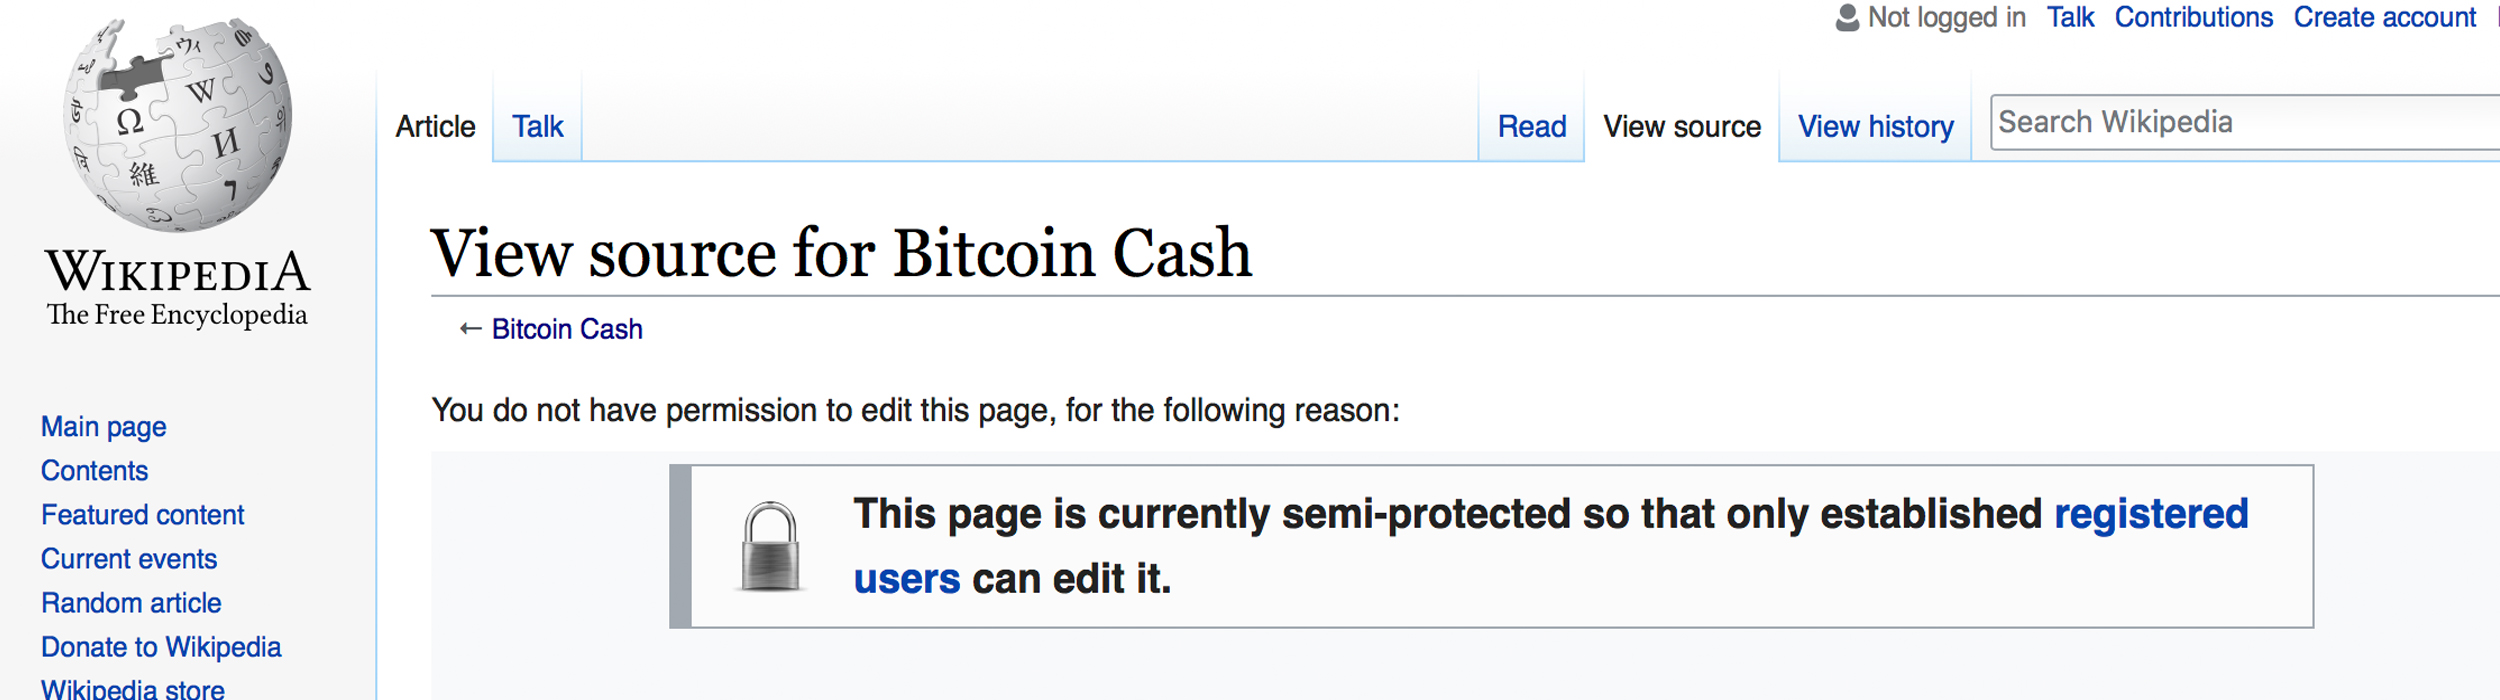 Bitcoin Cash Wiki Article Suffers From Edit Warring and Vandalism